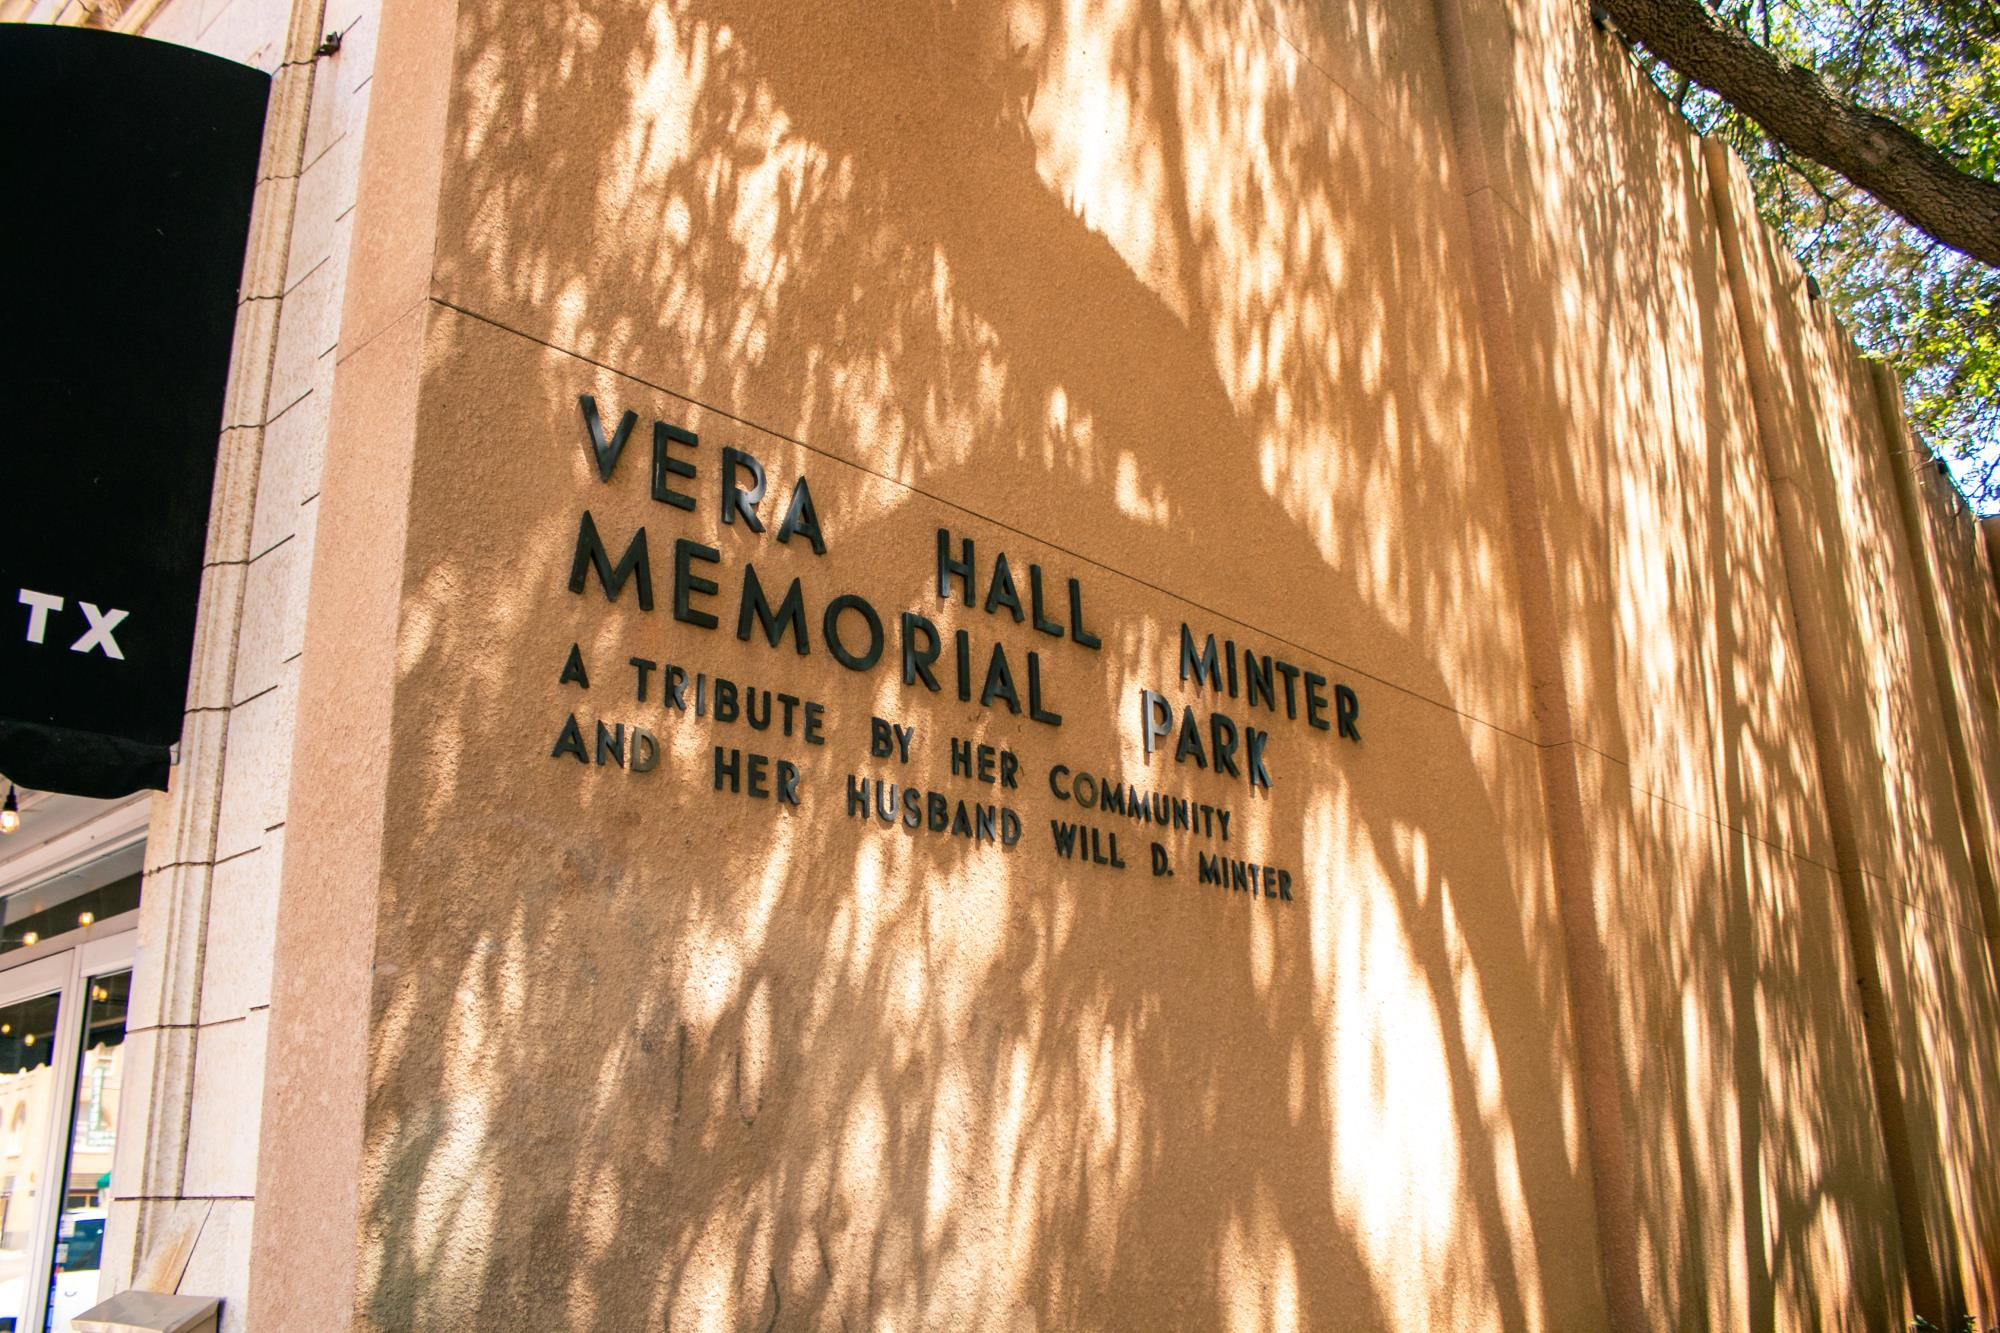 Note on the Side of the Park Building Memorializing Vera and Will Minter